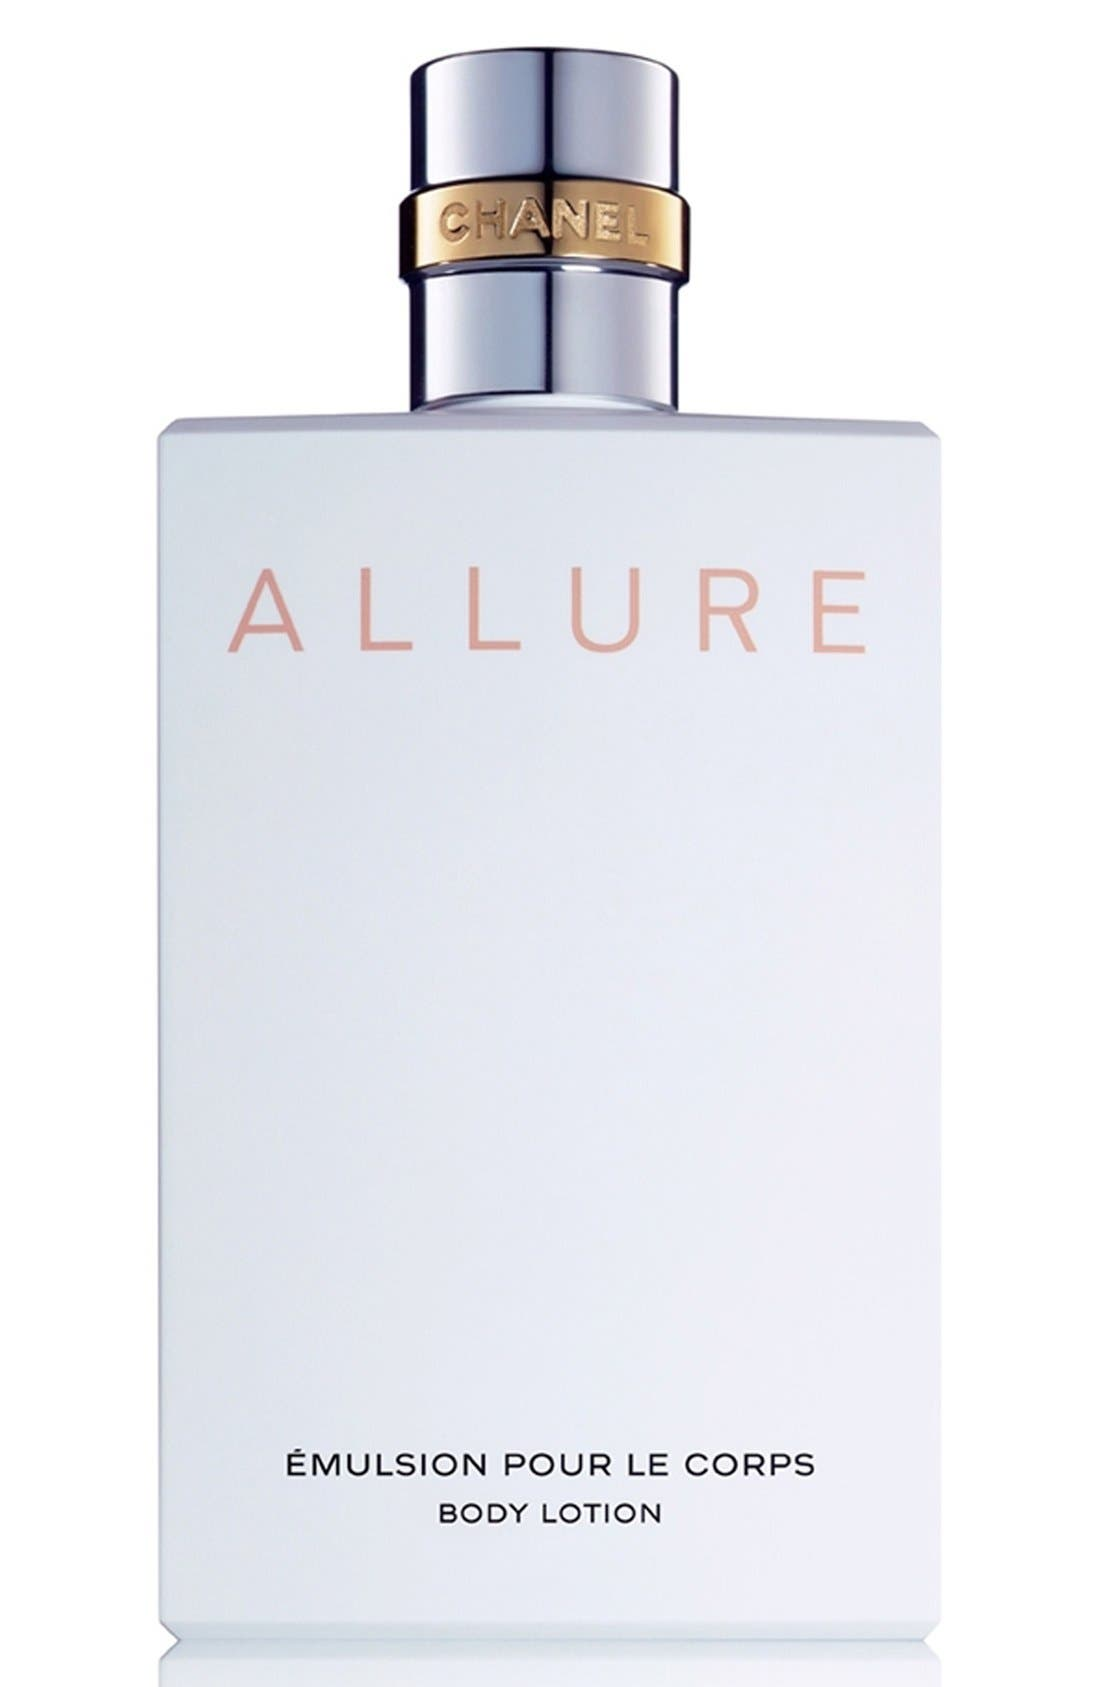 CHANEL ALLURE 